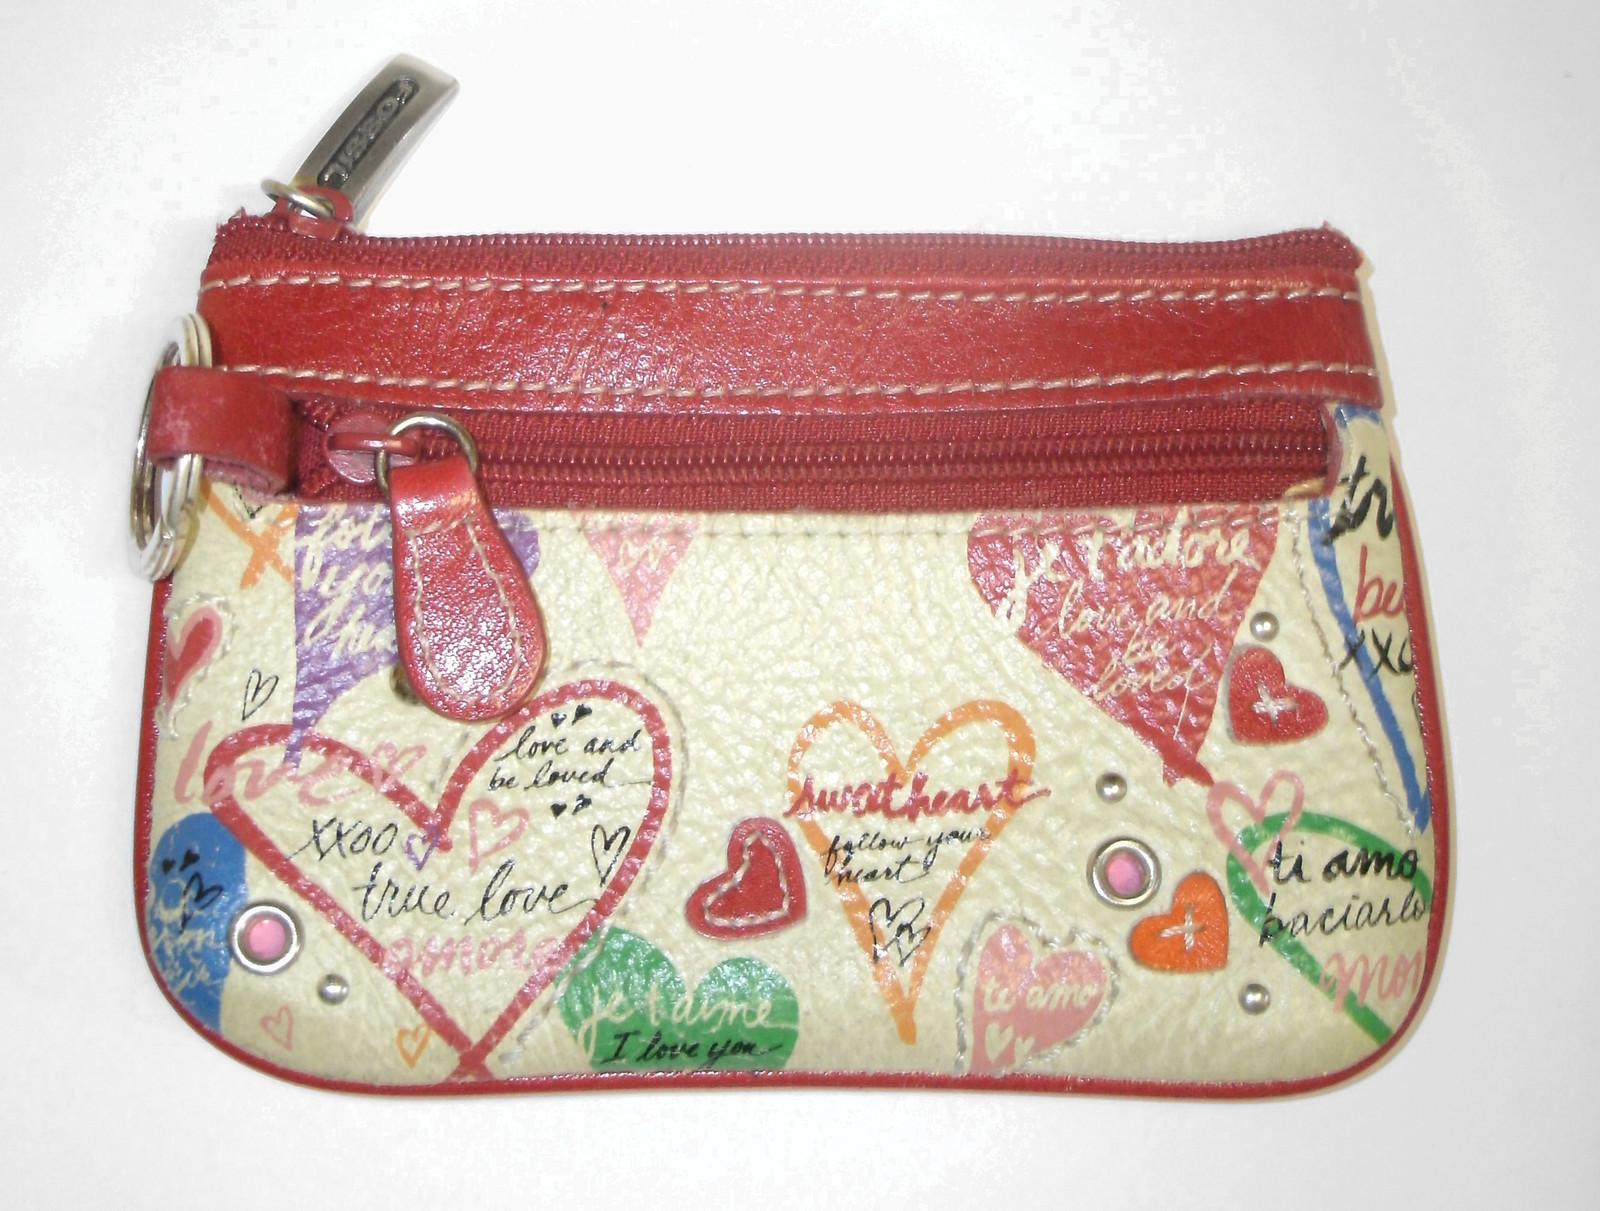 Fossil Mini ID Wallet Coin Purse Red Leather Heart Love Keychain